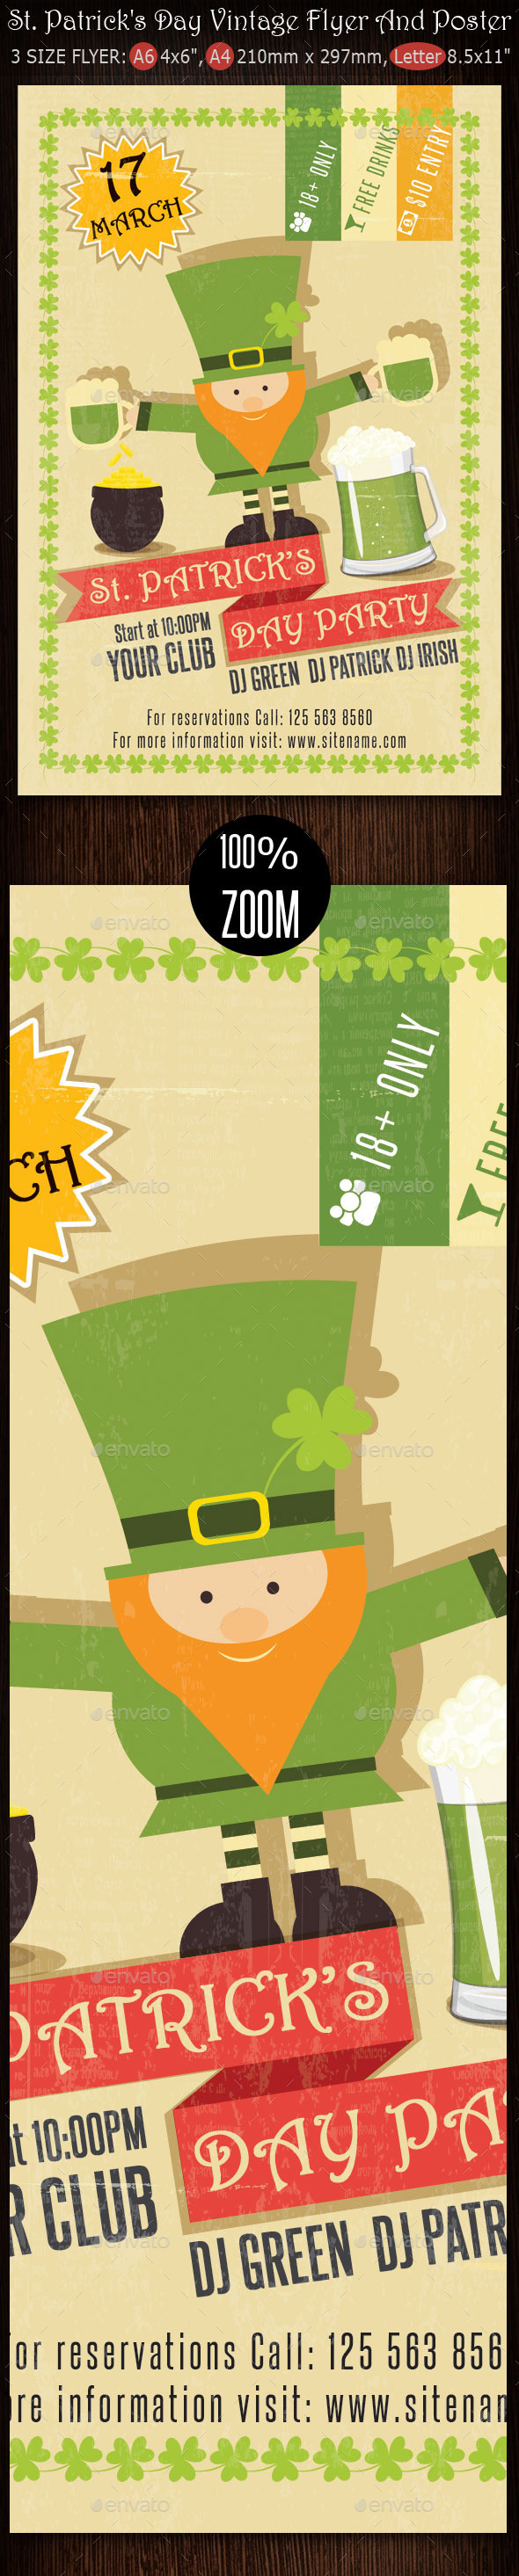 GraphicRiver St Patrick s Day Vintage Flyer And Poster 10468714